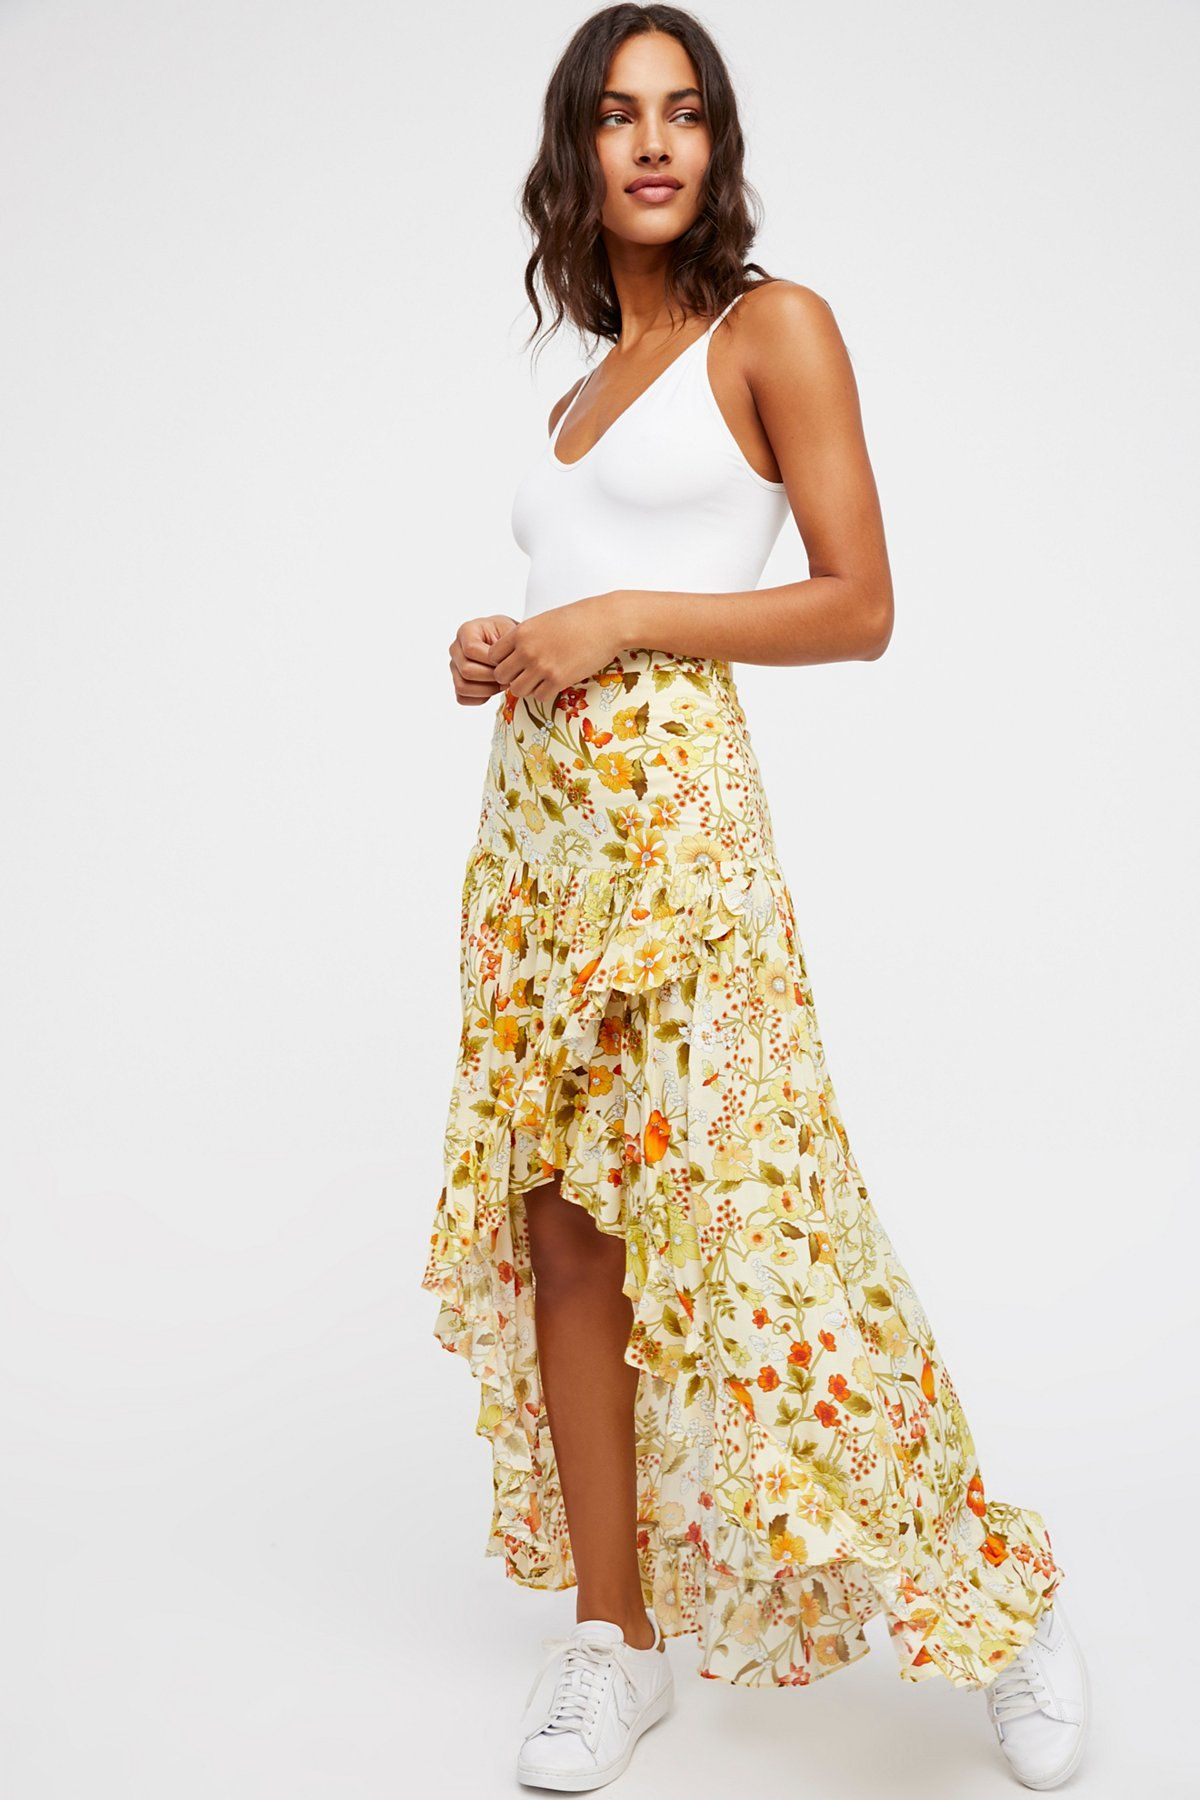 7acf16f01a Sayulita Frill Split Skirt | Floral printed maxi skirt featured in an  exaggerated high low silhouette. * Ruffle trim * Hidden side zip closure *  Surplice ...